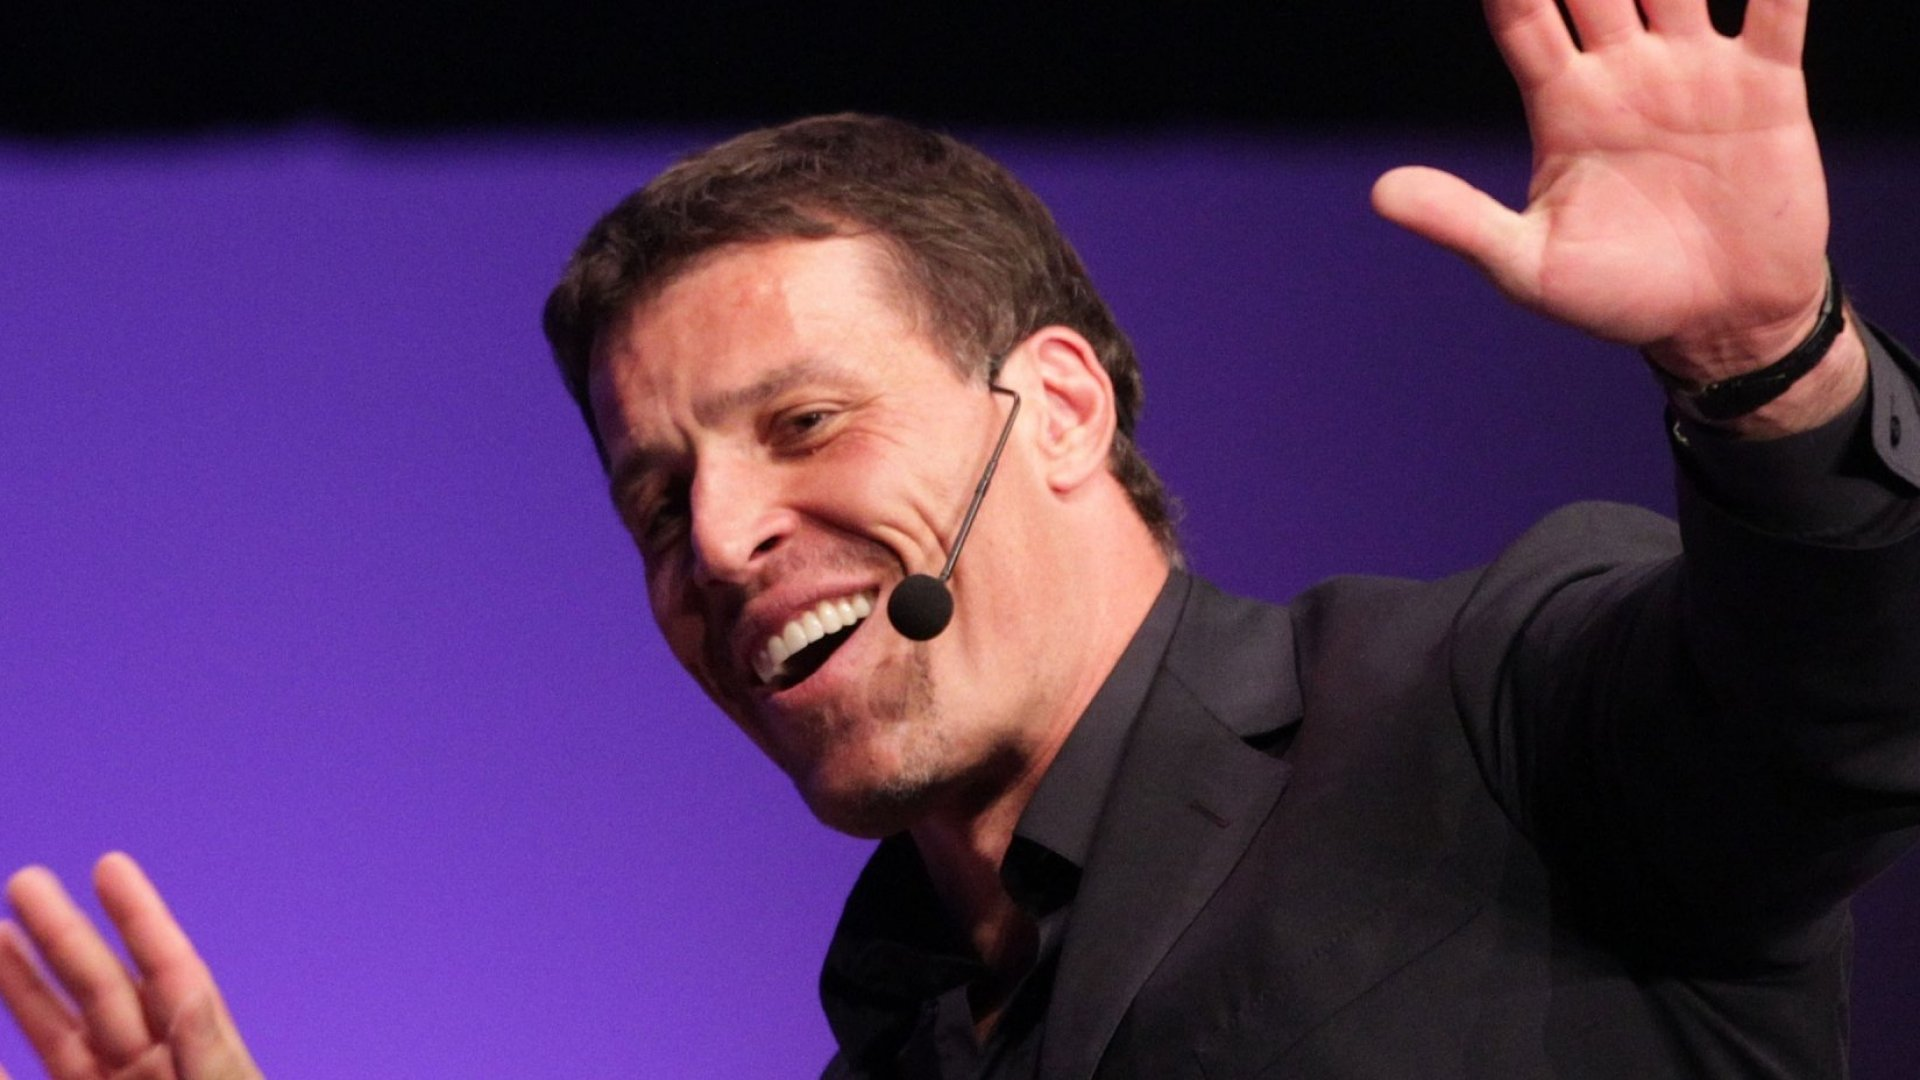 6 Leadership Lessons From My Interview on the Tony Robbins Podcast